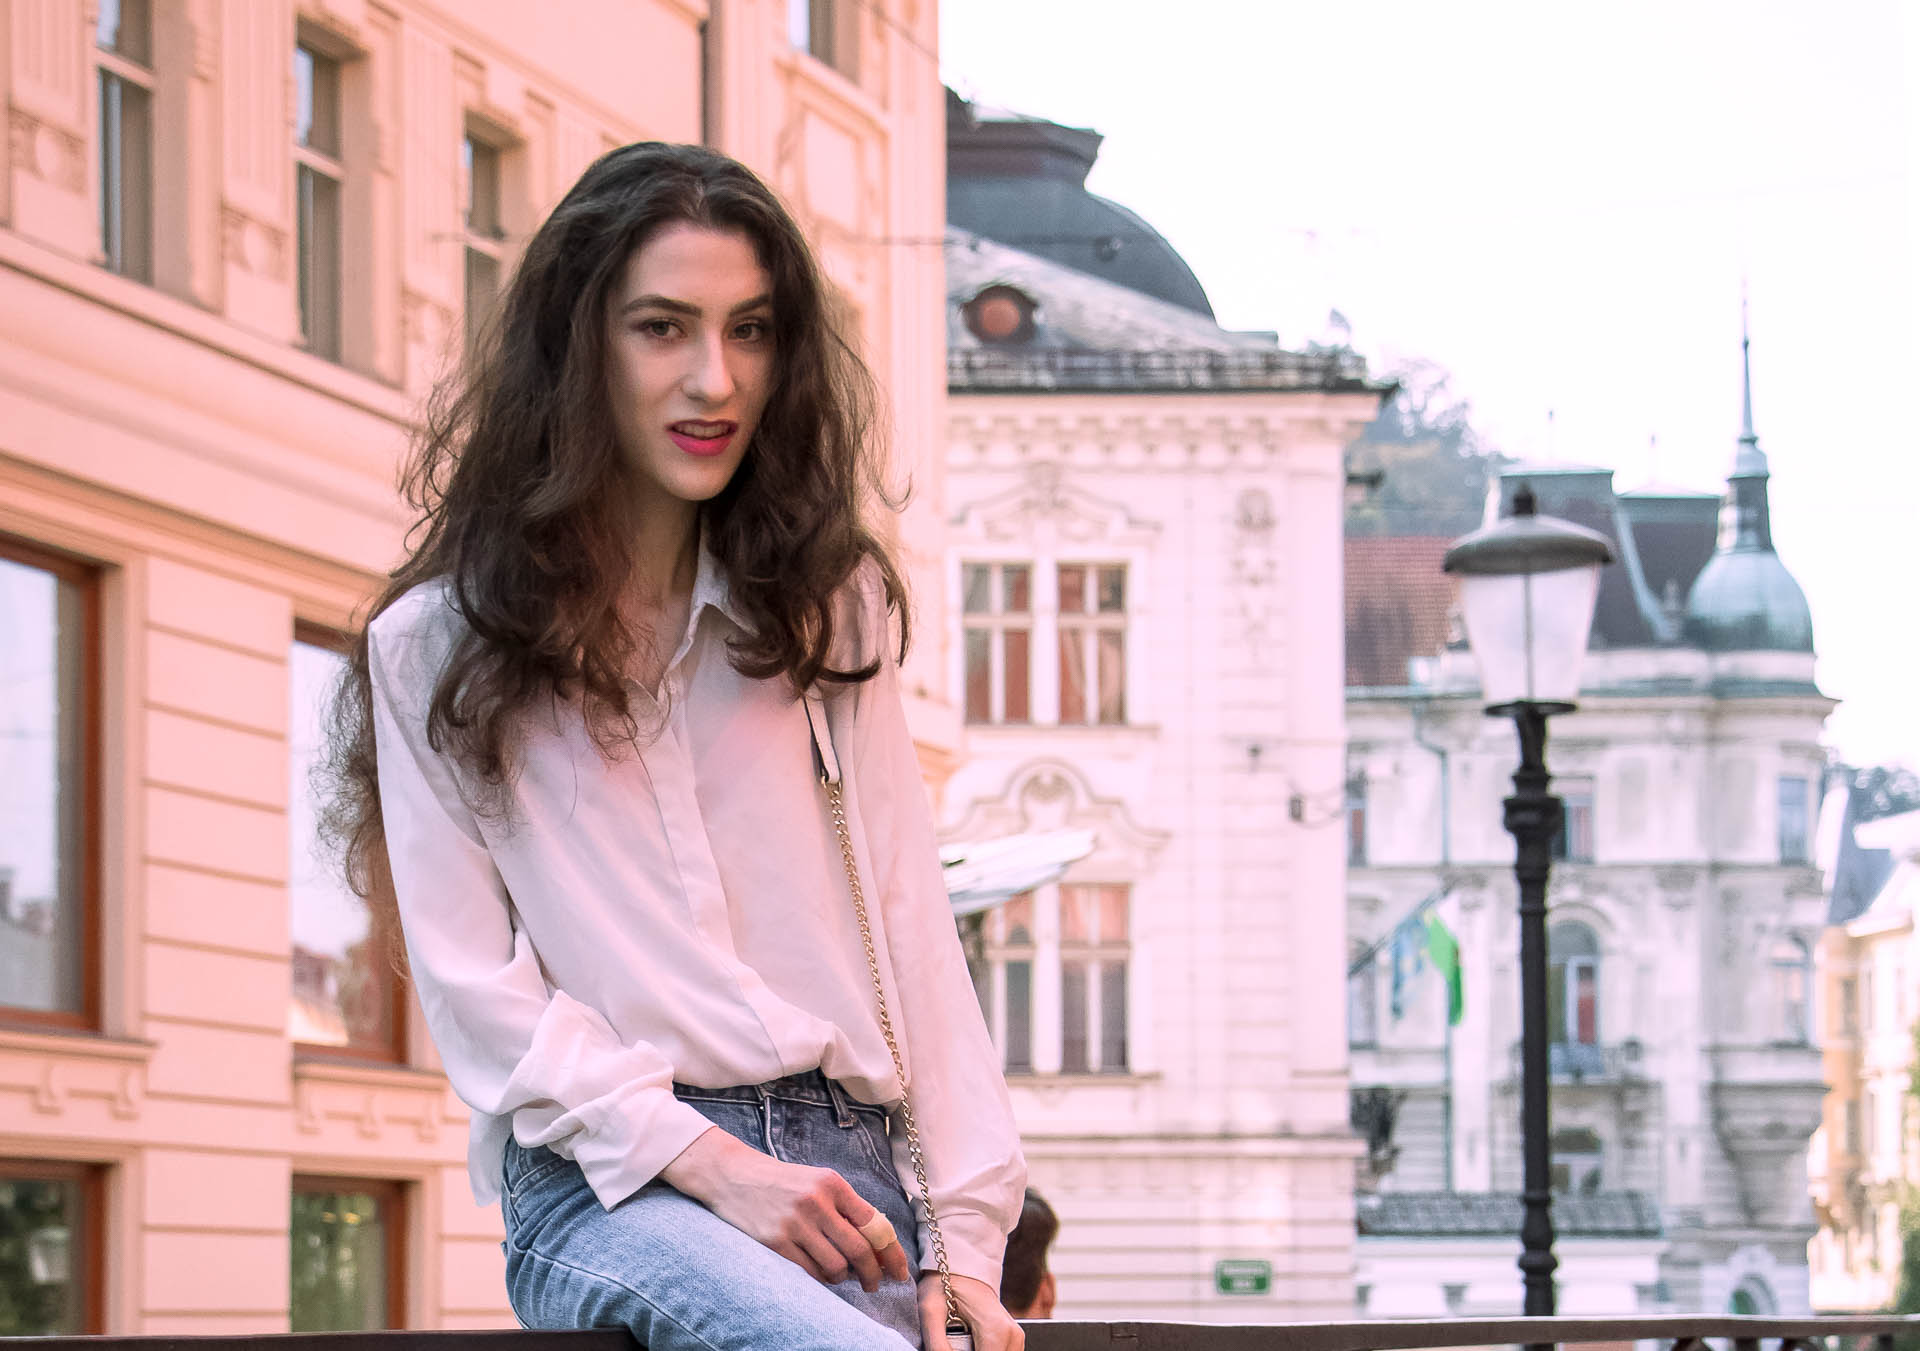 Beautiful Slovenian Fashion Blogger Veronika Lipar of Brunette from Wall dressed in chic everyday outfit white silk shirt from Sandro Paris, white and black polka dot cami slip top, A.P.C. light blue jeans